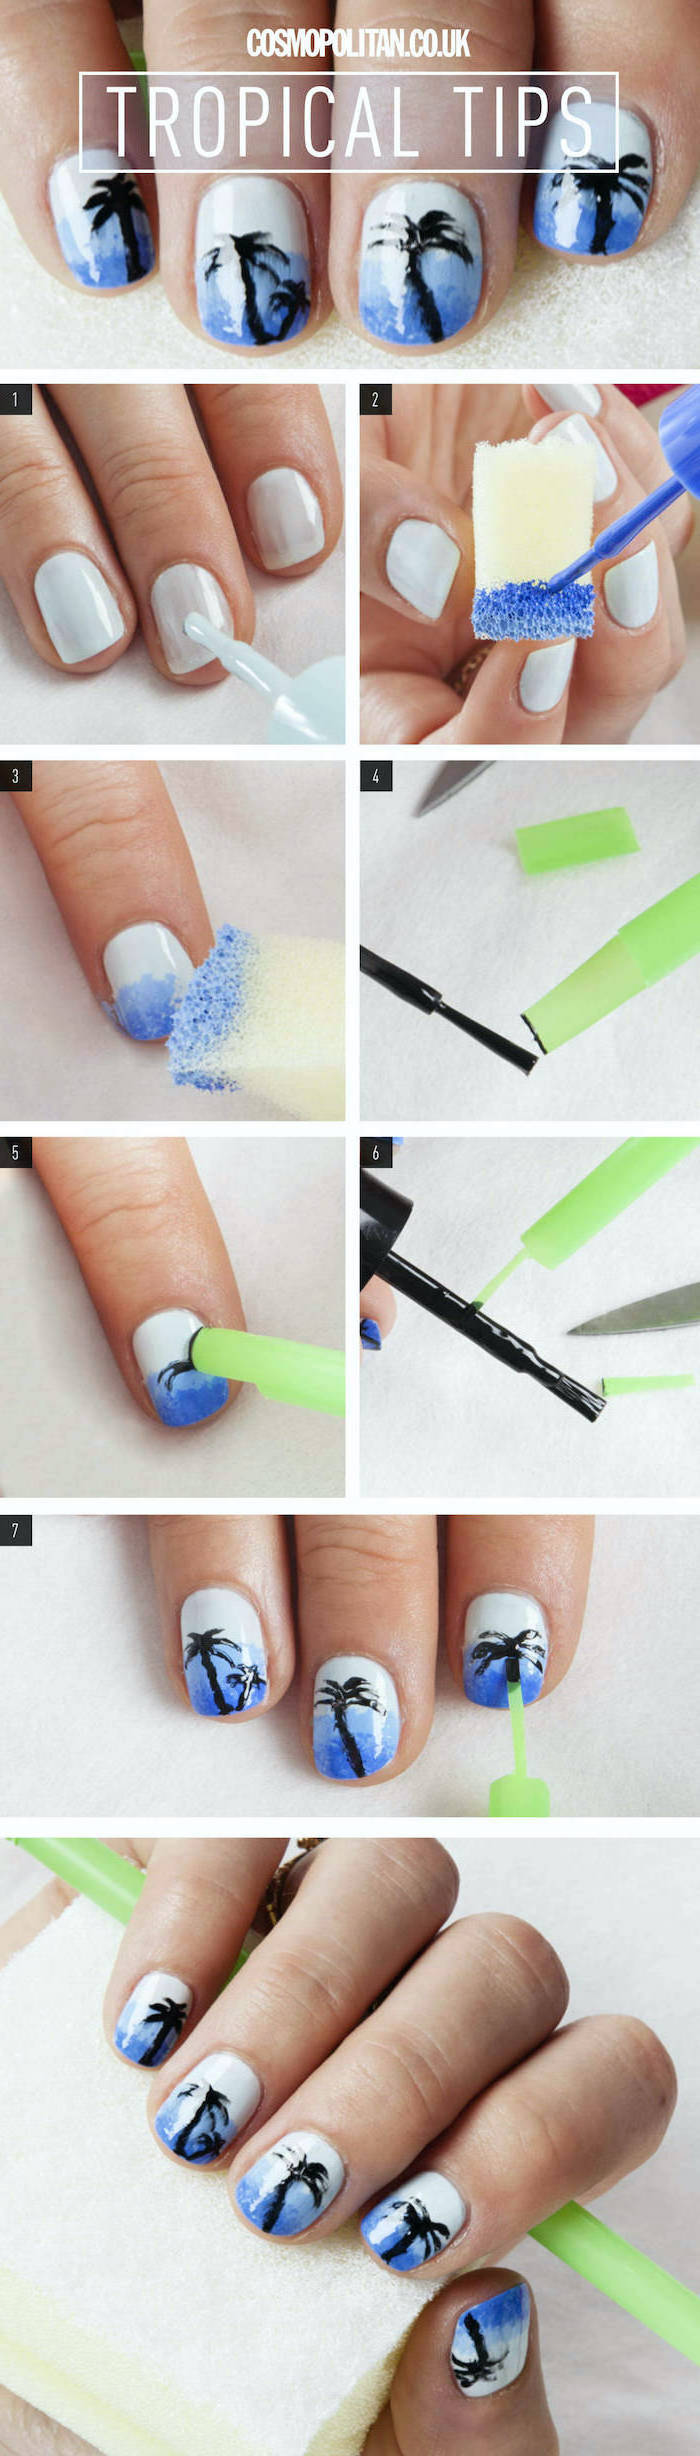 step by step diy tutorial, tropical tips, short squoval nails, blue and white nail polish, ombre nails, cute nail designs, palm trees decorations